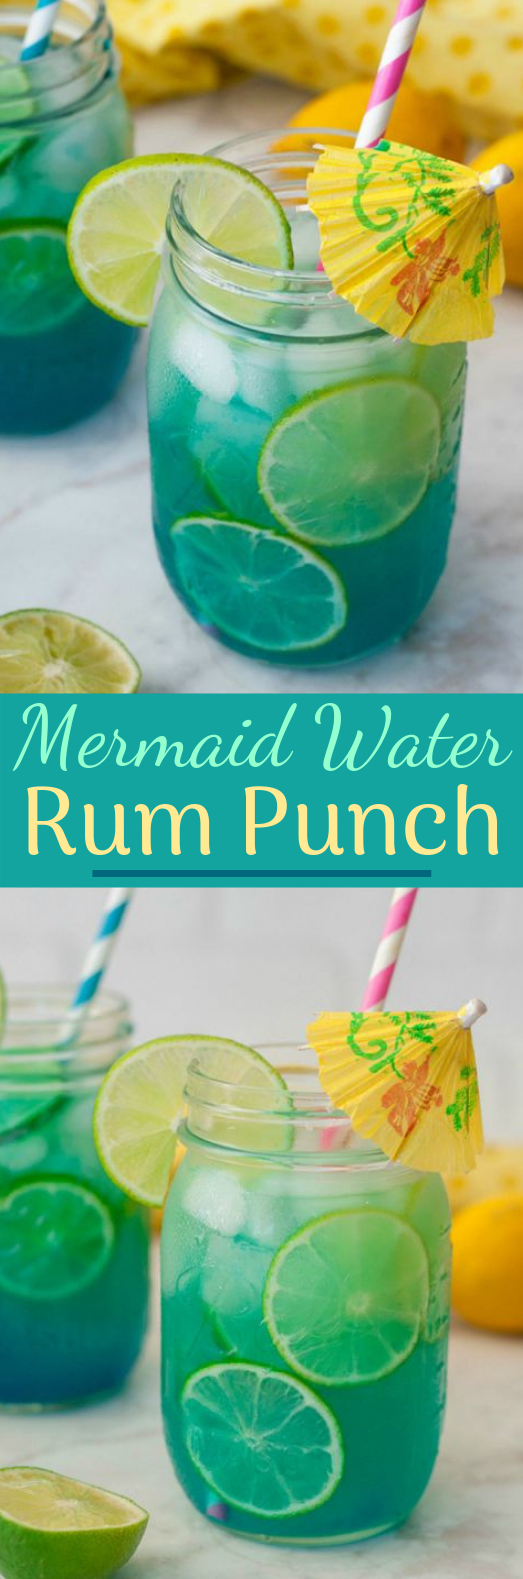 Mermaid Water Rum Punch #freshdrink #cocktail